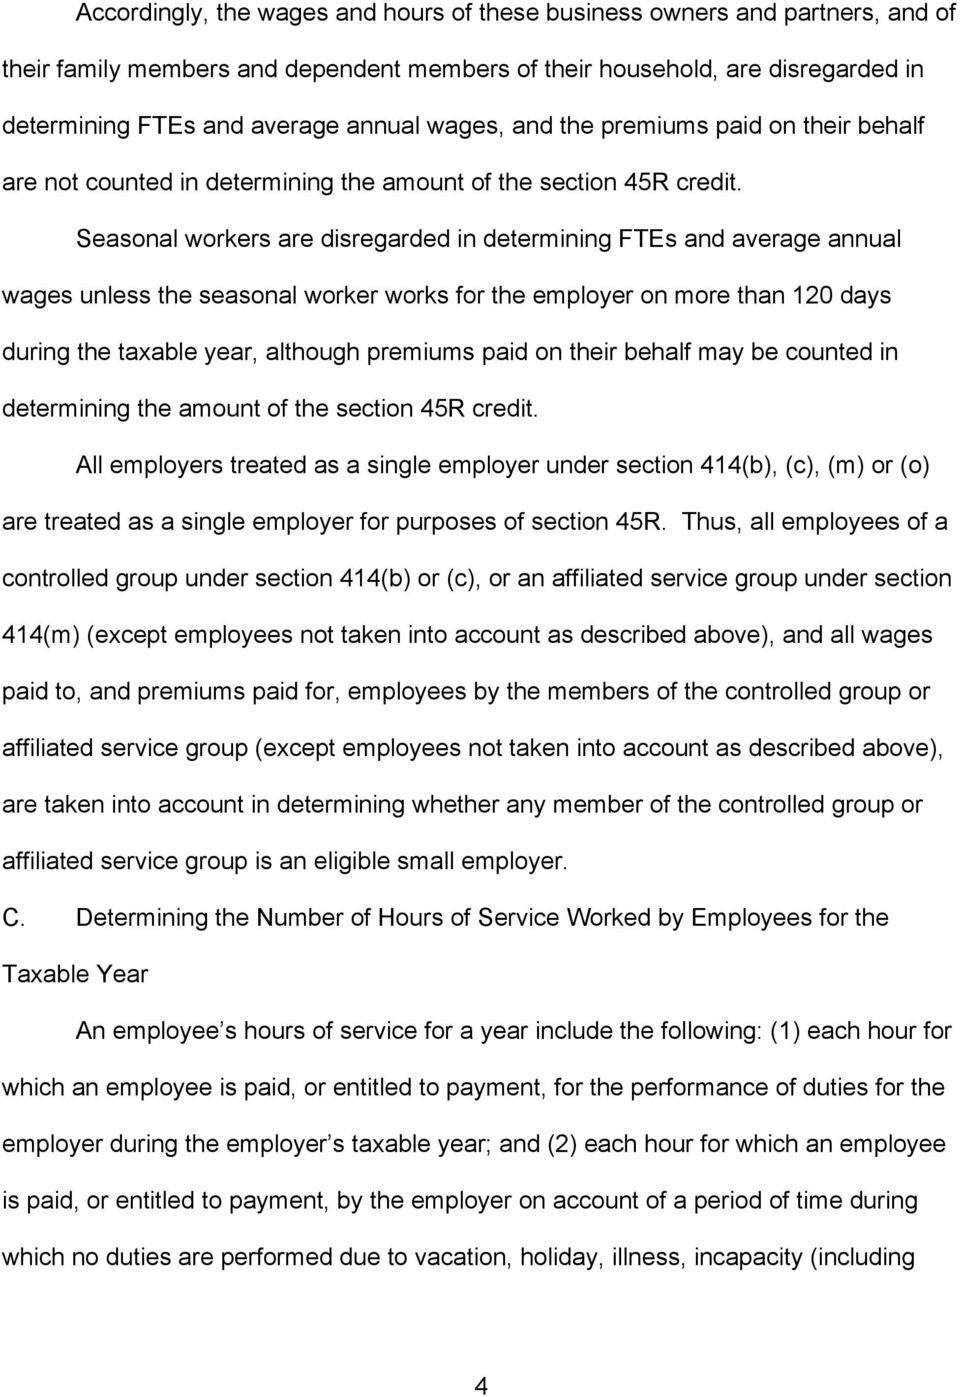 Seasonal workers are disregarded in determining FTEs and average annual wages unless the seasonal worker works for the employer on more than 120 days during the taxable year, although premiums paid